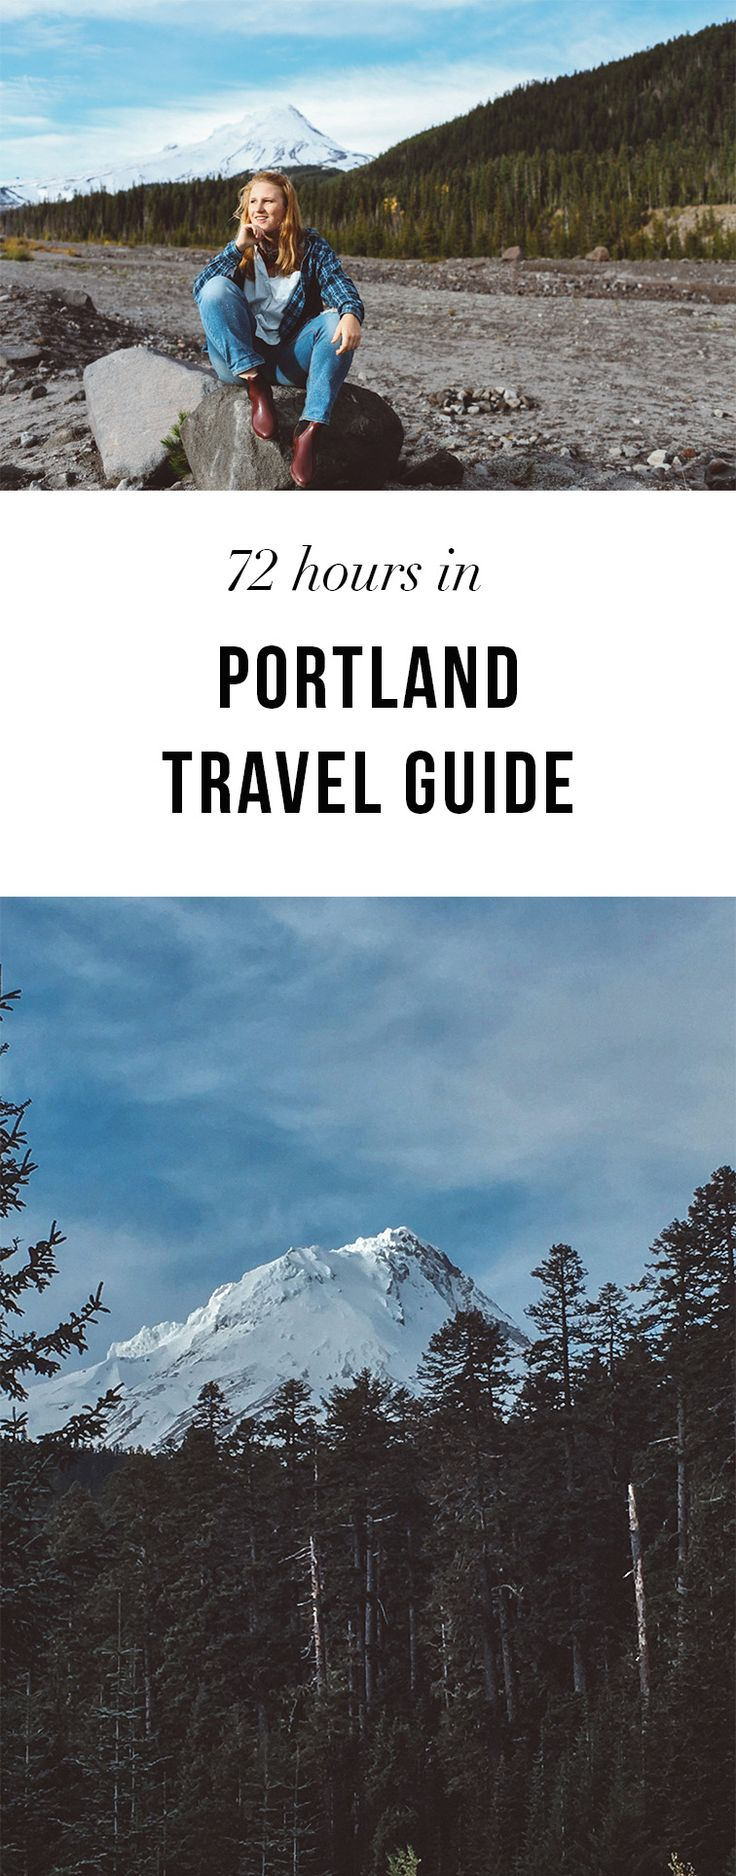 The Ultimate Travel Guide to Portland -- everything to do and see in Portland in under 72 hours Plus restaurant and hotel tips! Read here: http://whimsysoul.com/3-days-portland-travel-guide/